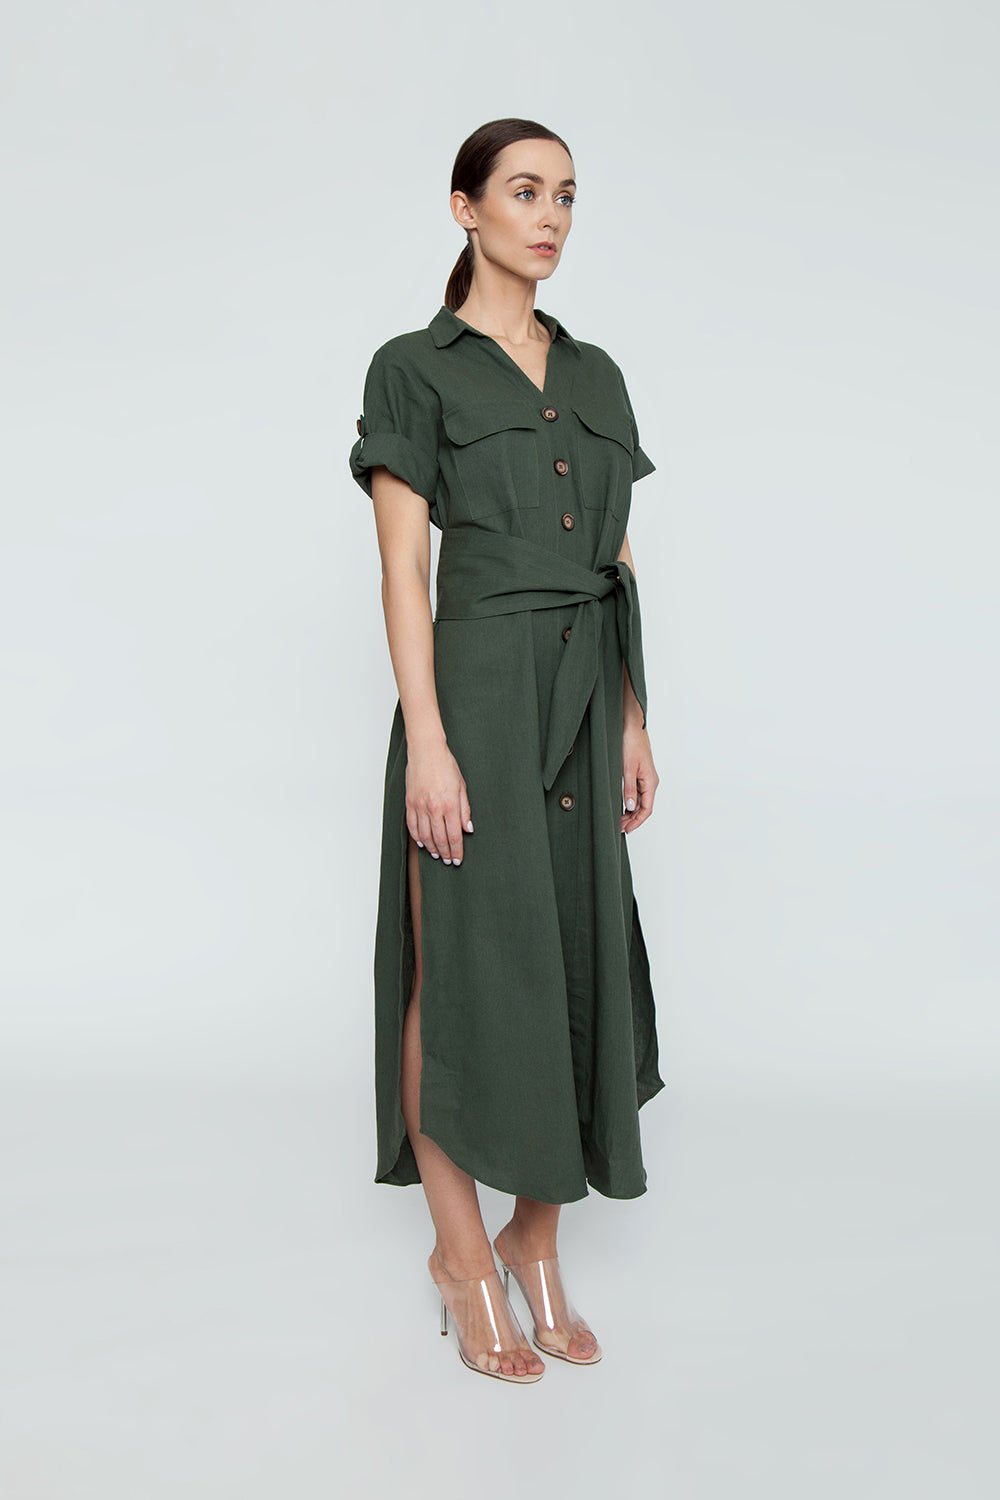 TRIYA Button Up Collared Maxi Dress - Military Green Dress | Military Green| Triya Button Up Collared Maxi Dress - Military Green Collared maxi dress Short sleeves Button up front closure Side View